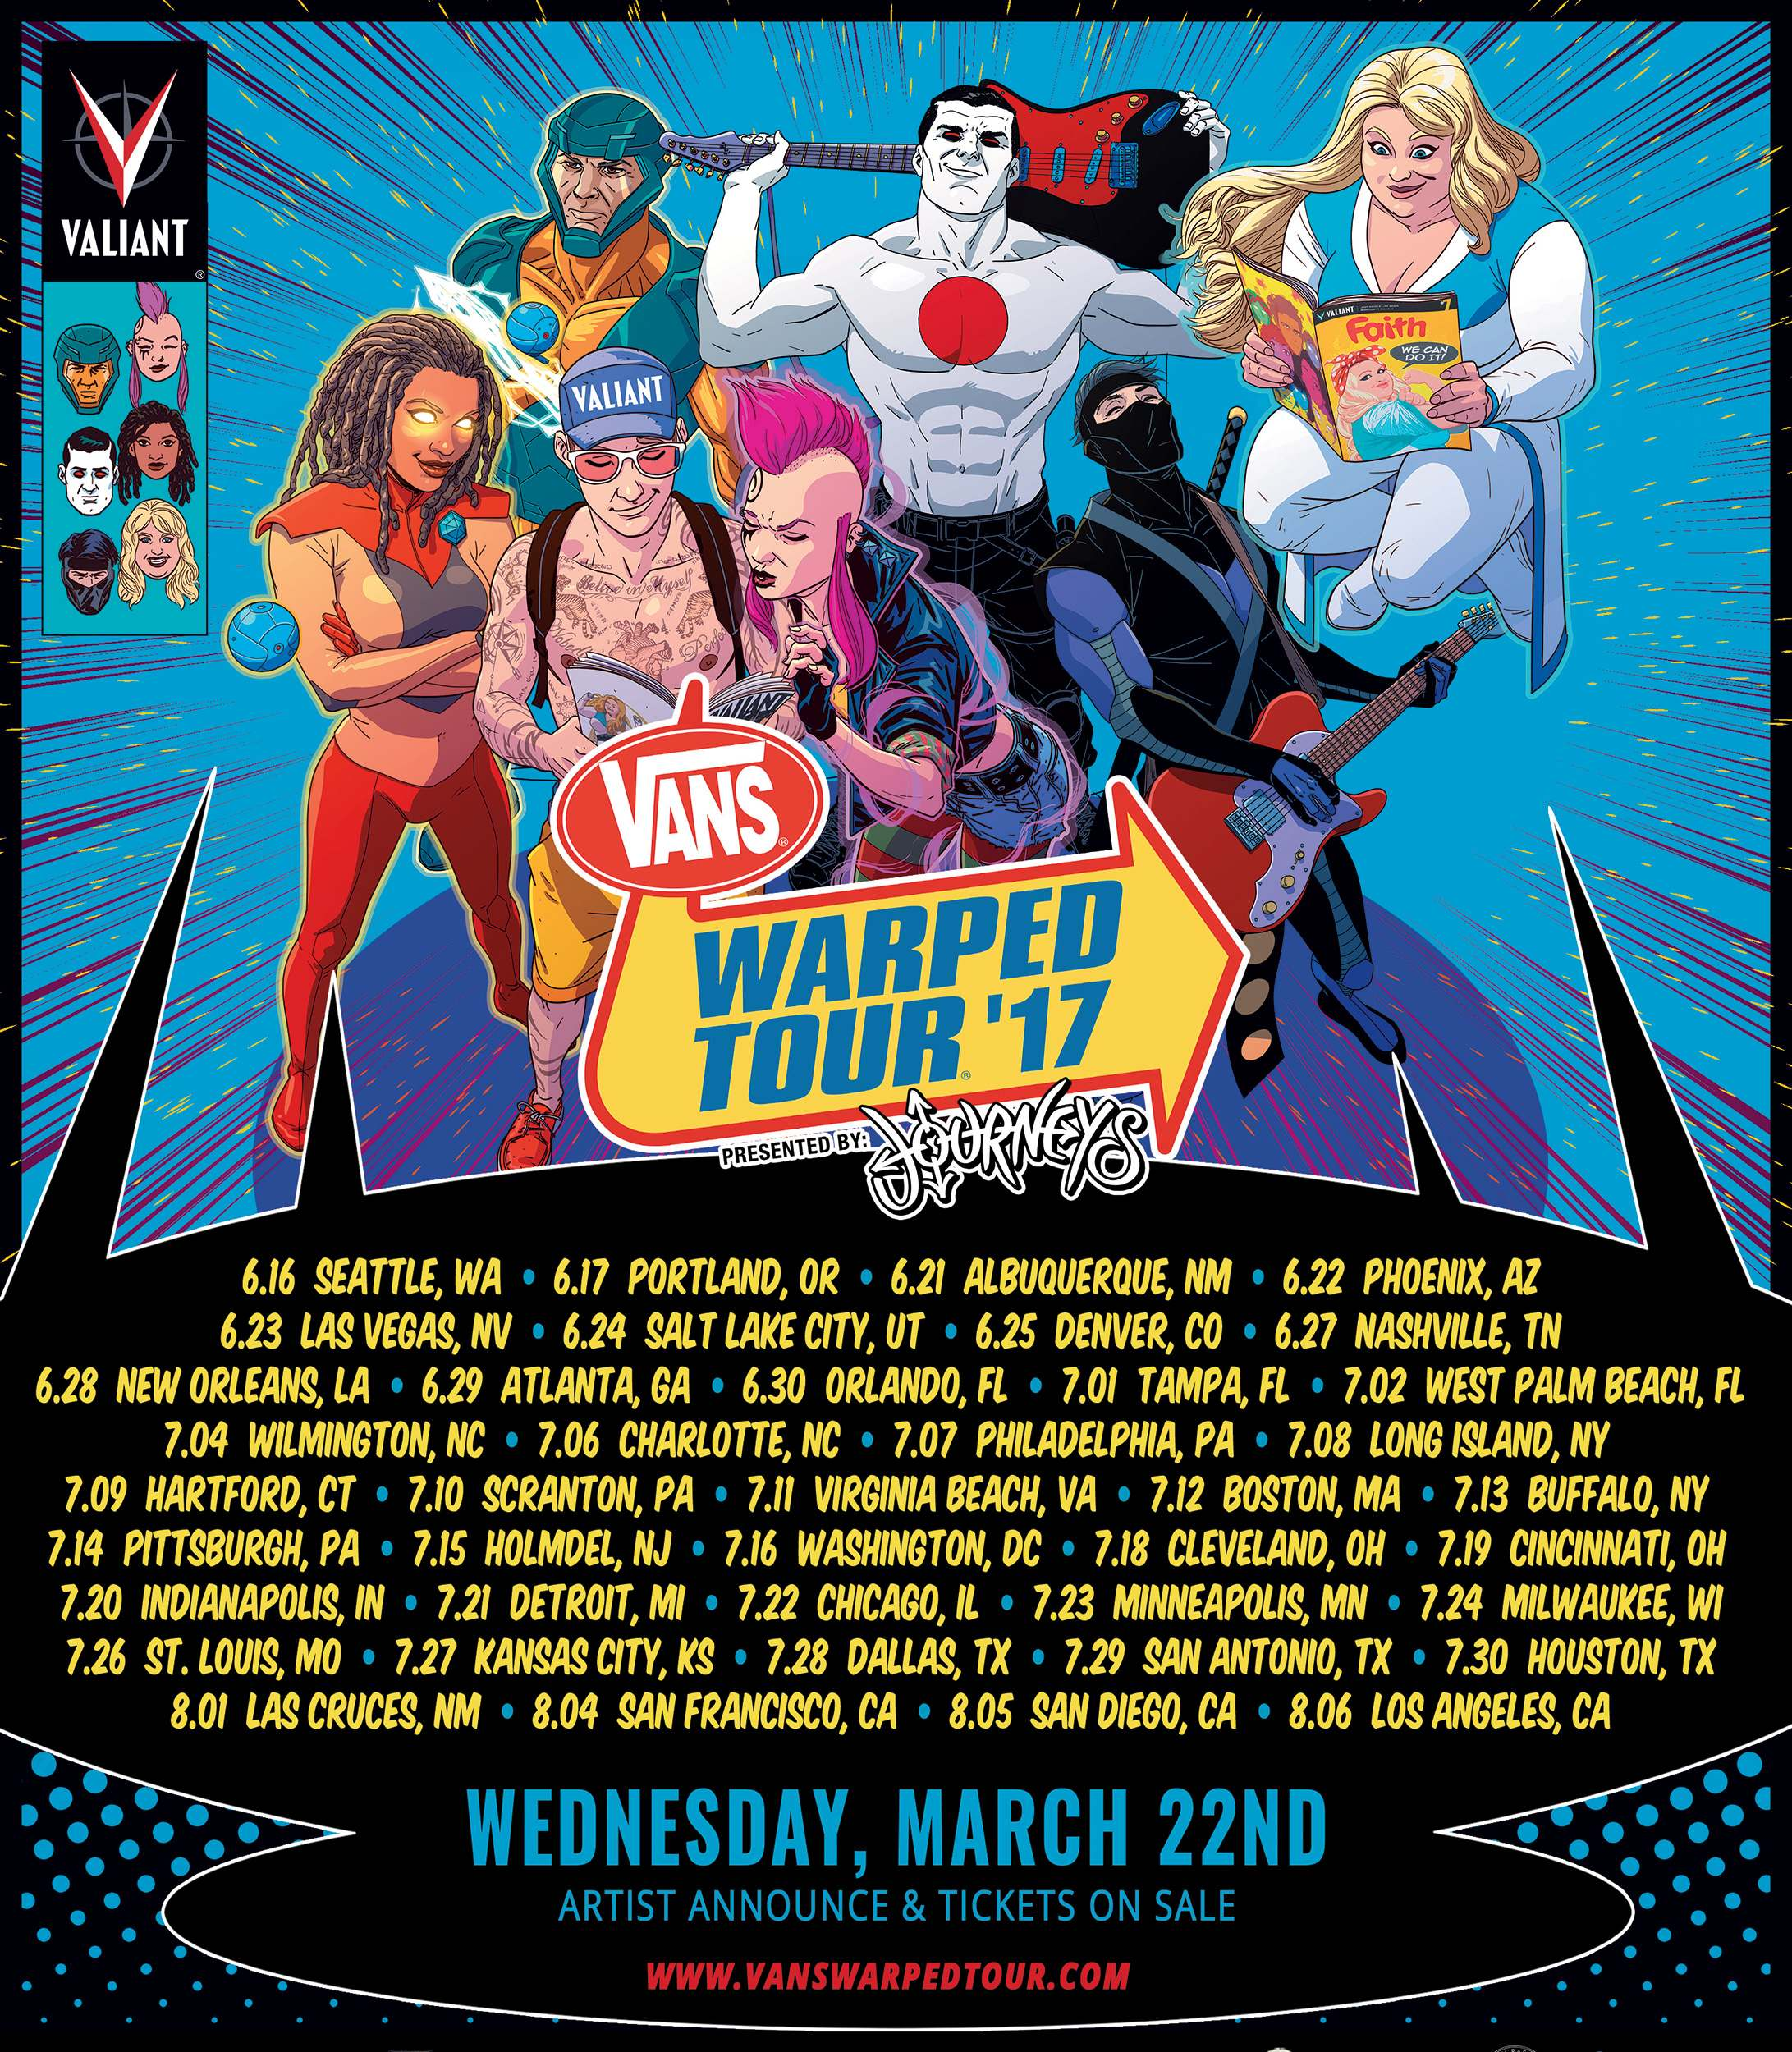 ef6f9f7605 Valiant to Appear at 2017 Vans Warped Tour® Dates in California